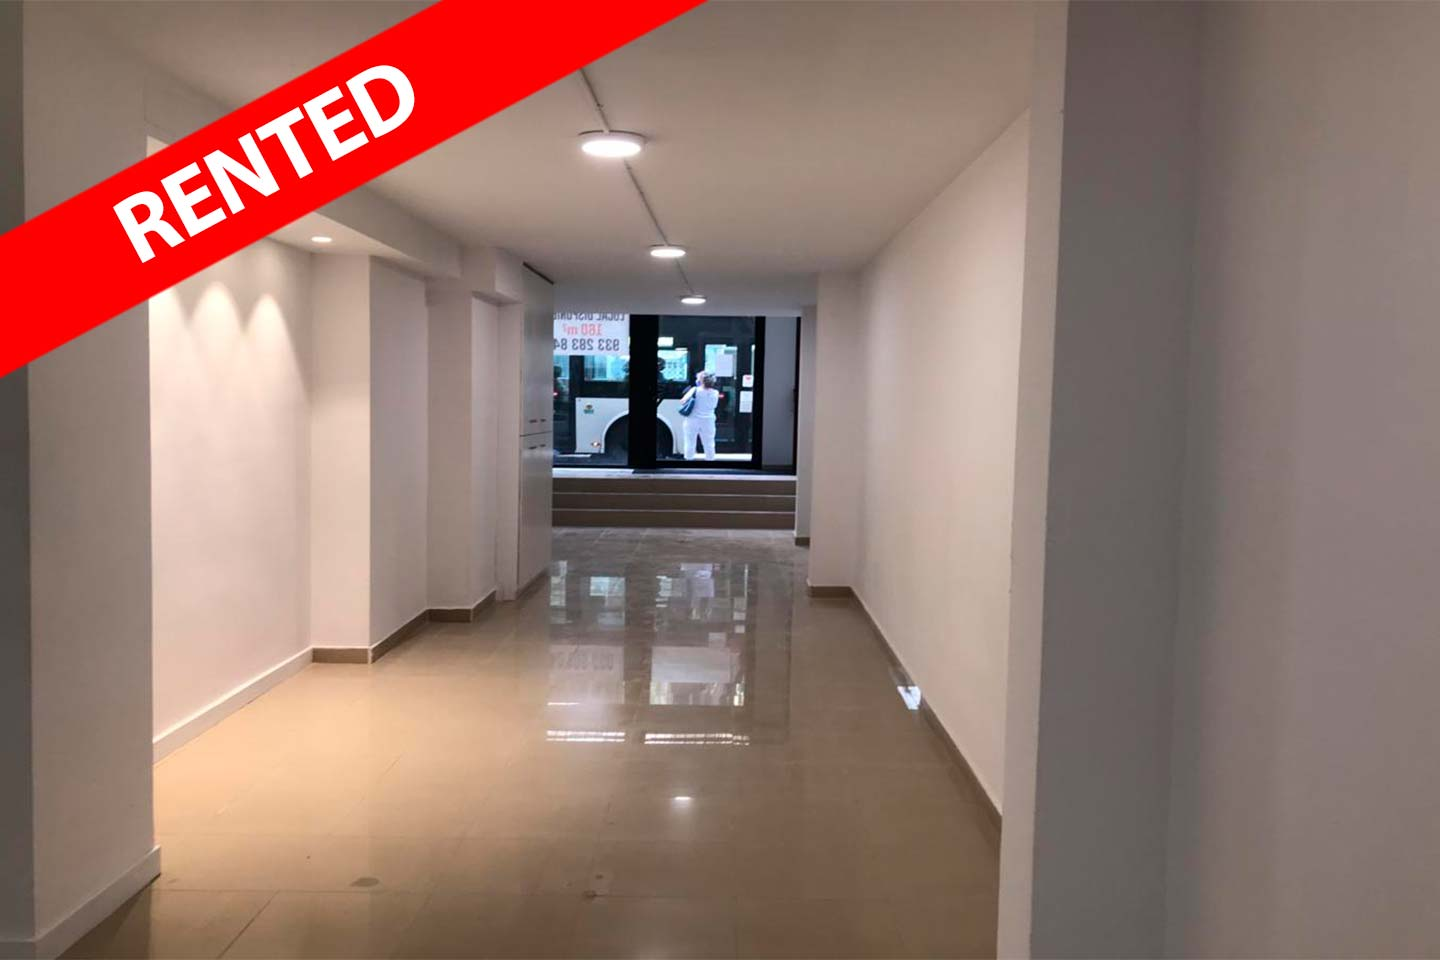 Commercial Property for rent near Gaudi Avenue in Barcelona